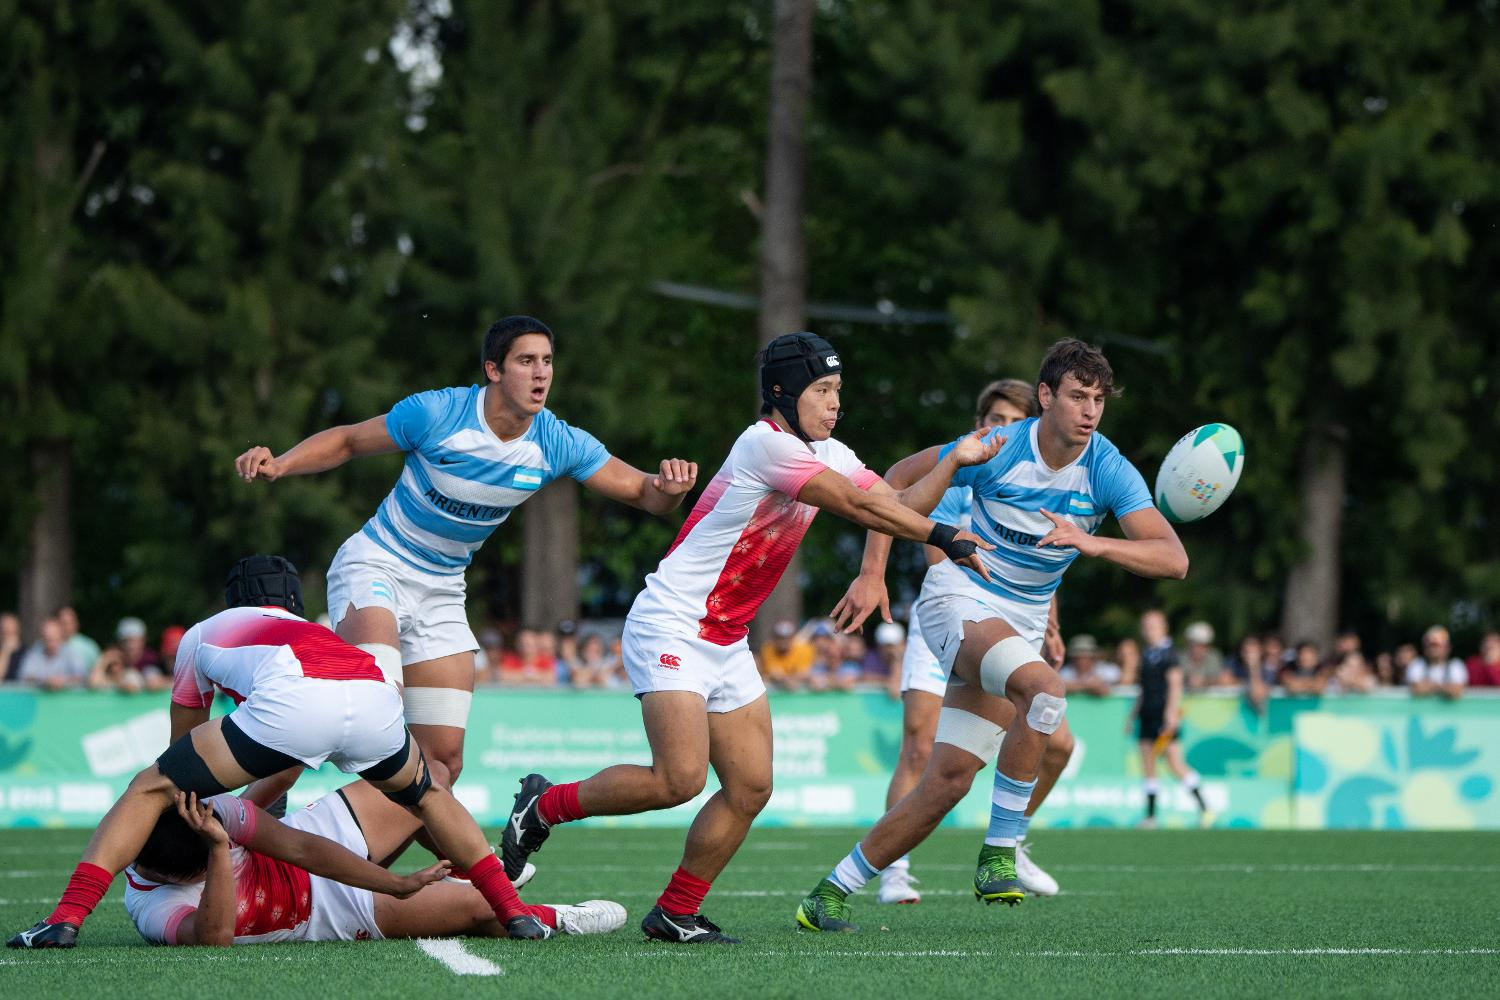 Buenos Aires 2018 Youth Olympic Games